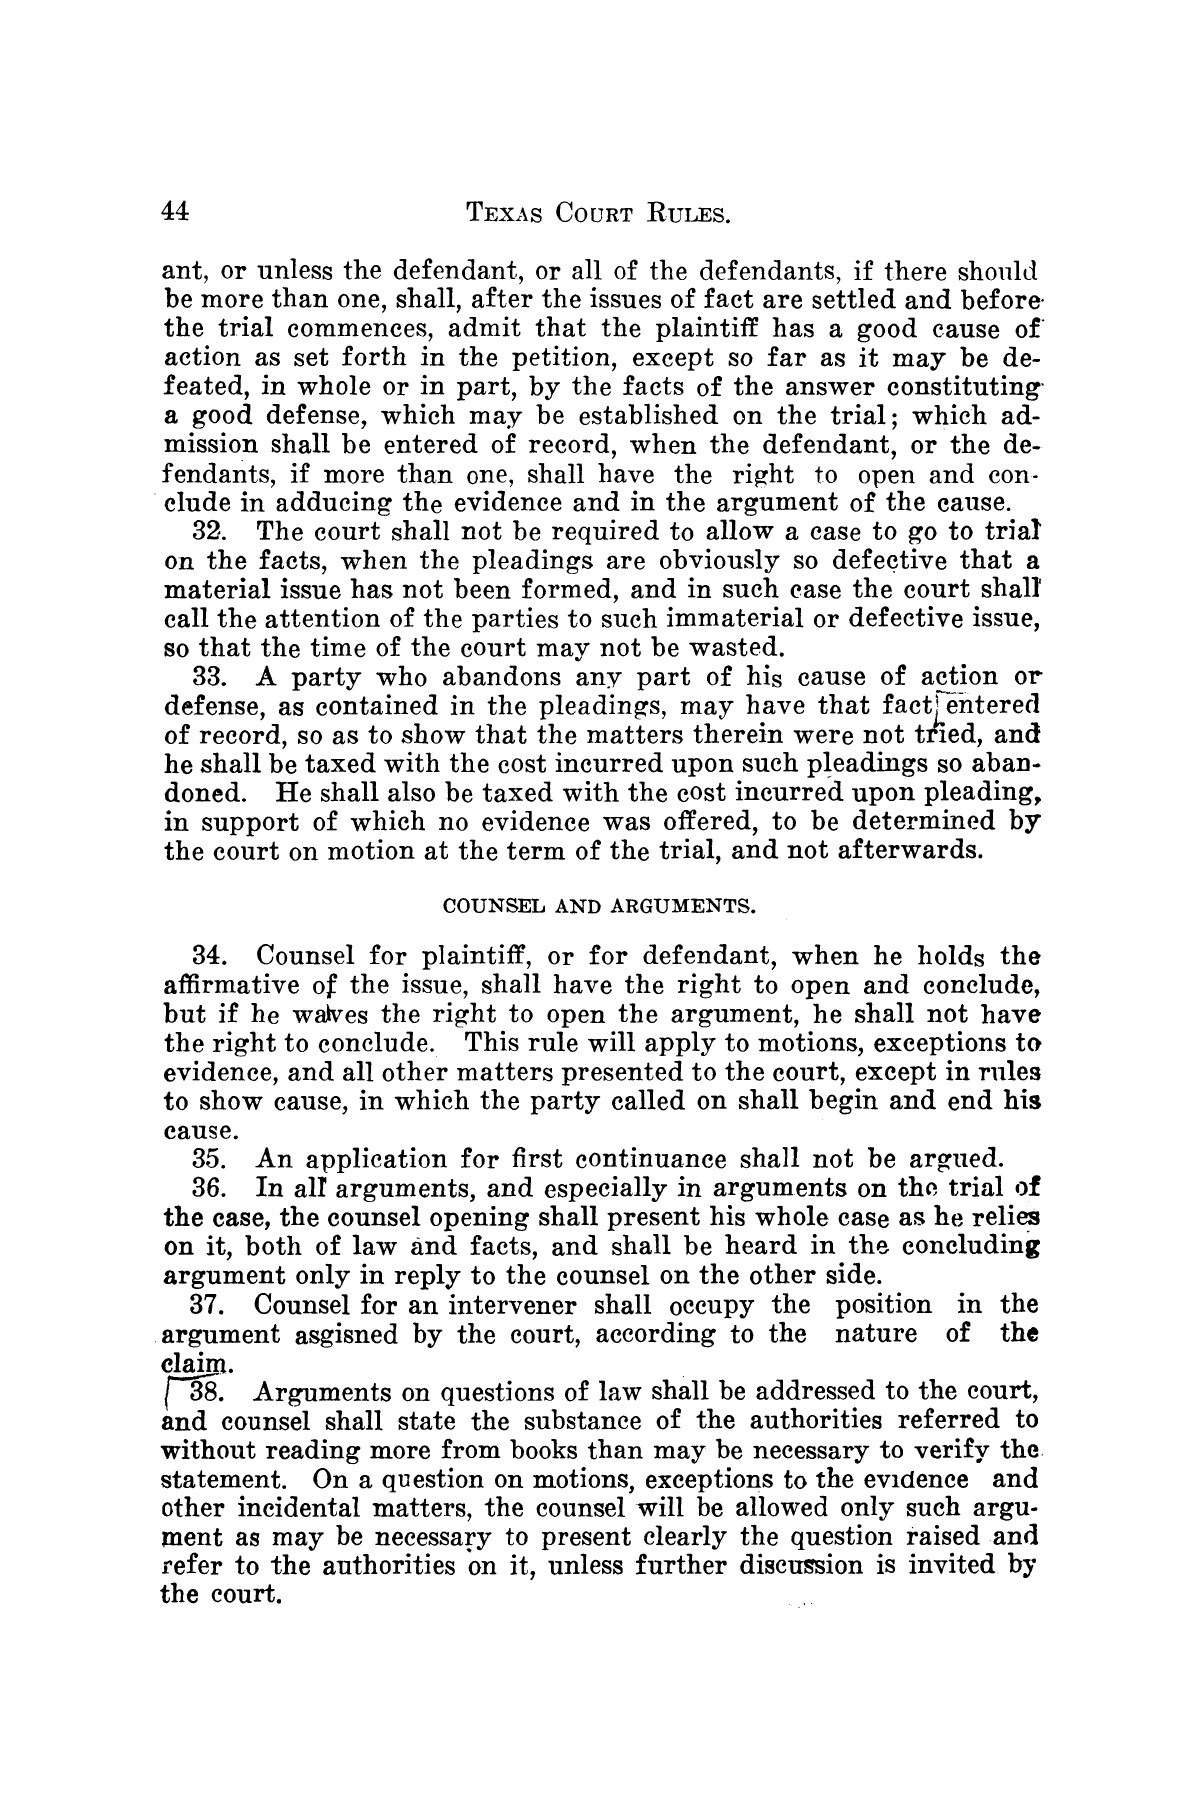 Gammel's Rules of the Courts of Texas                                                                                                      [Sequence #]: 44 of 70